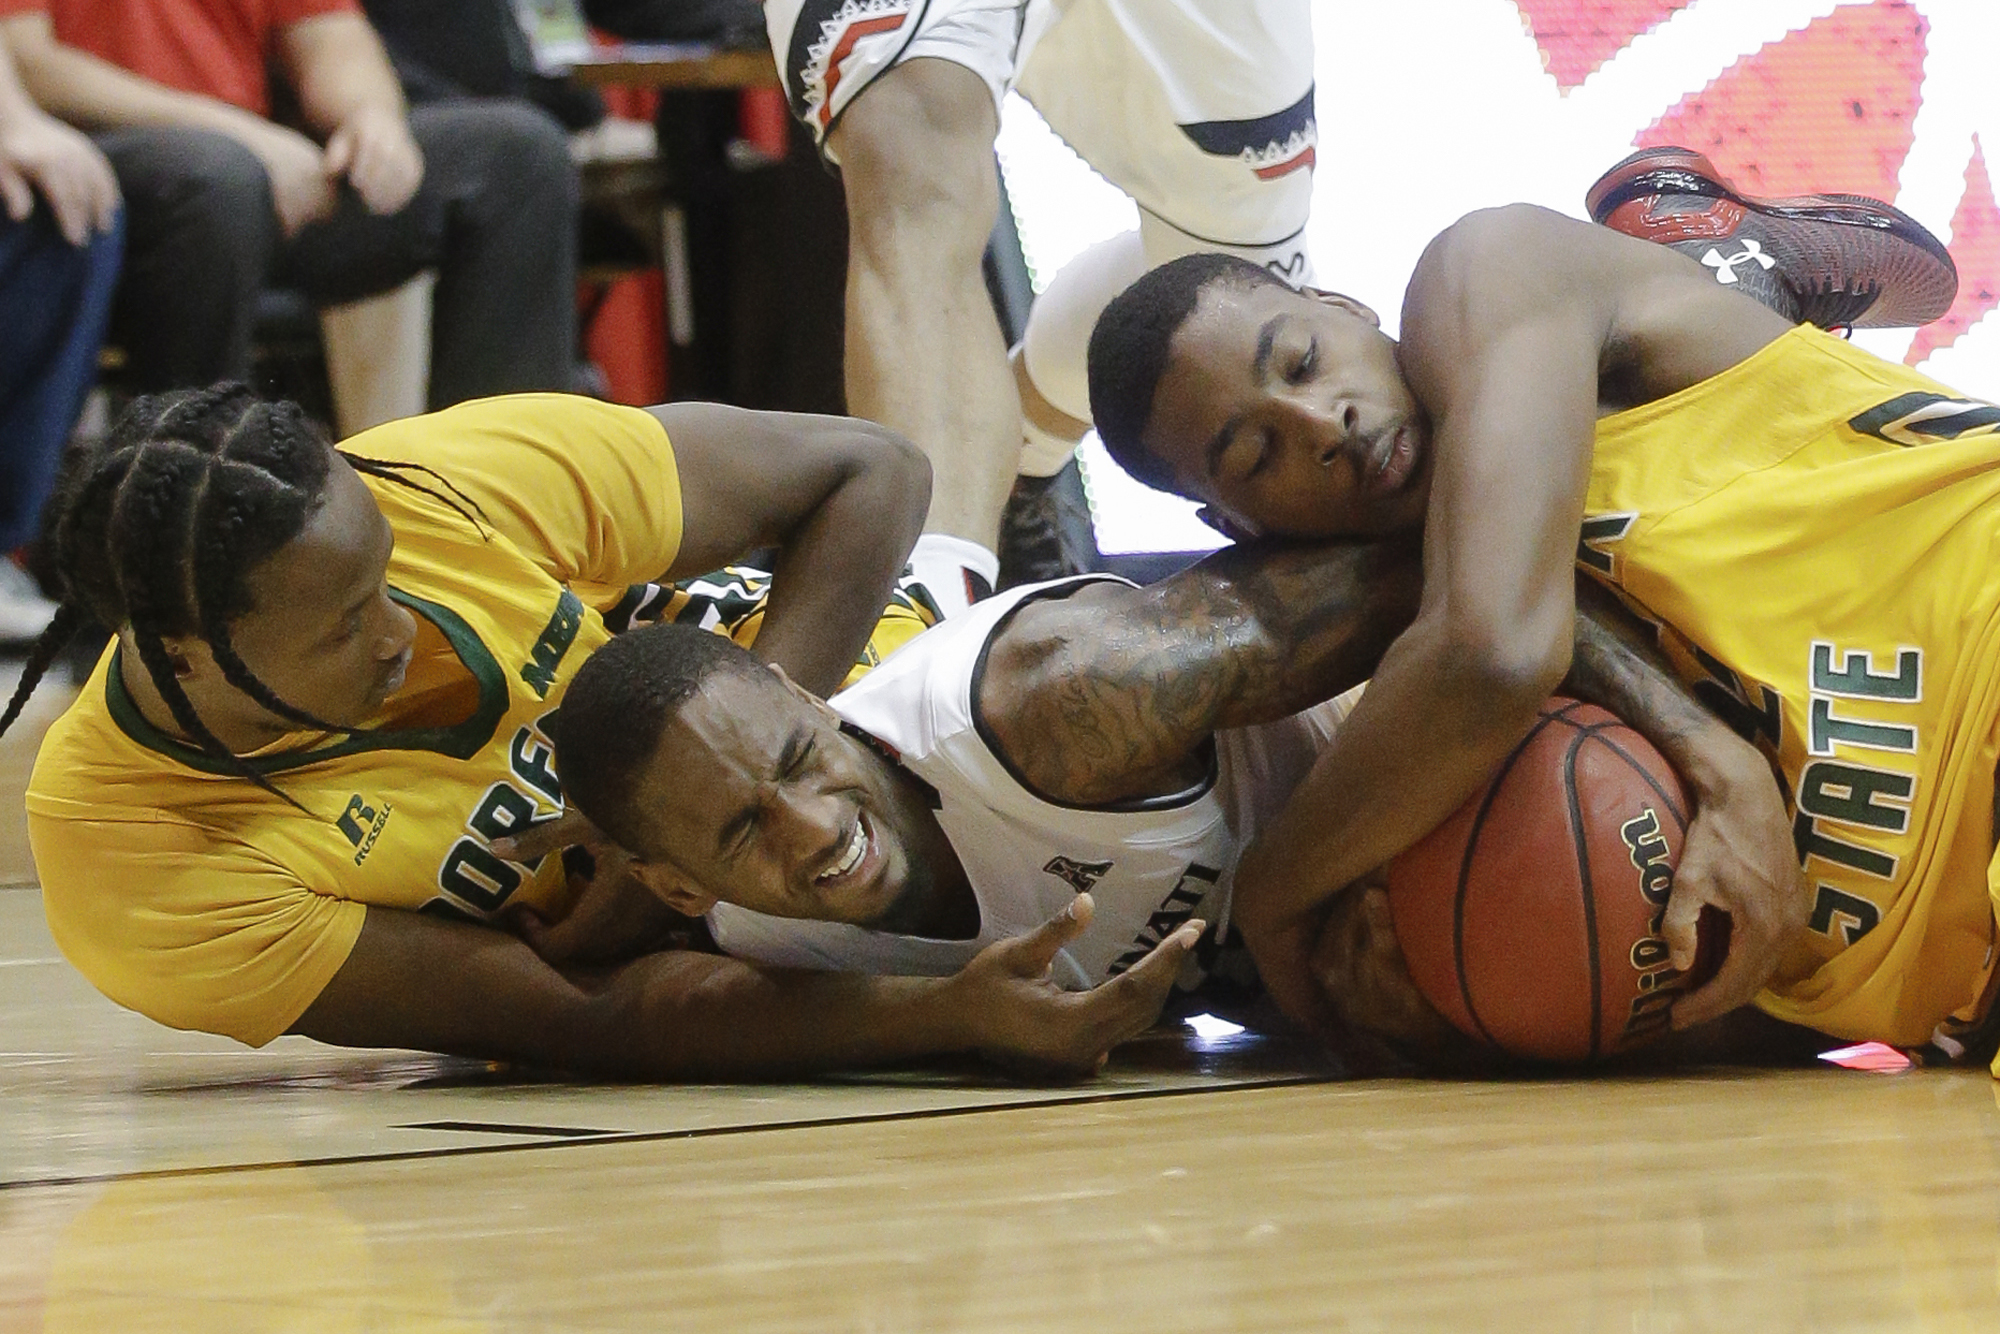 Cincinnati's Farad Cobb, center, scrambles for the ball against Norfolk State's Jeff Short, left, and Alex Long during the first half of an NCAA college basketball game Tuesday, Dec. 15, 2015, in Cincinnati. (AP Photo/John Minchillo)